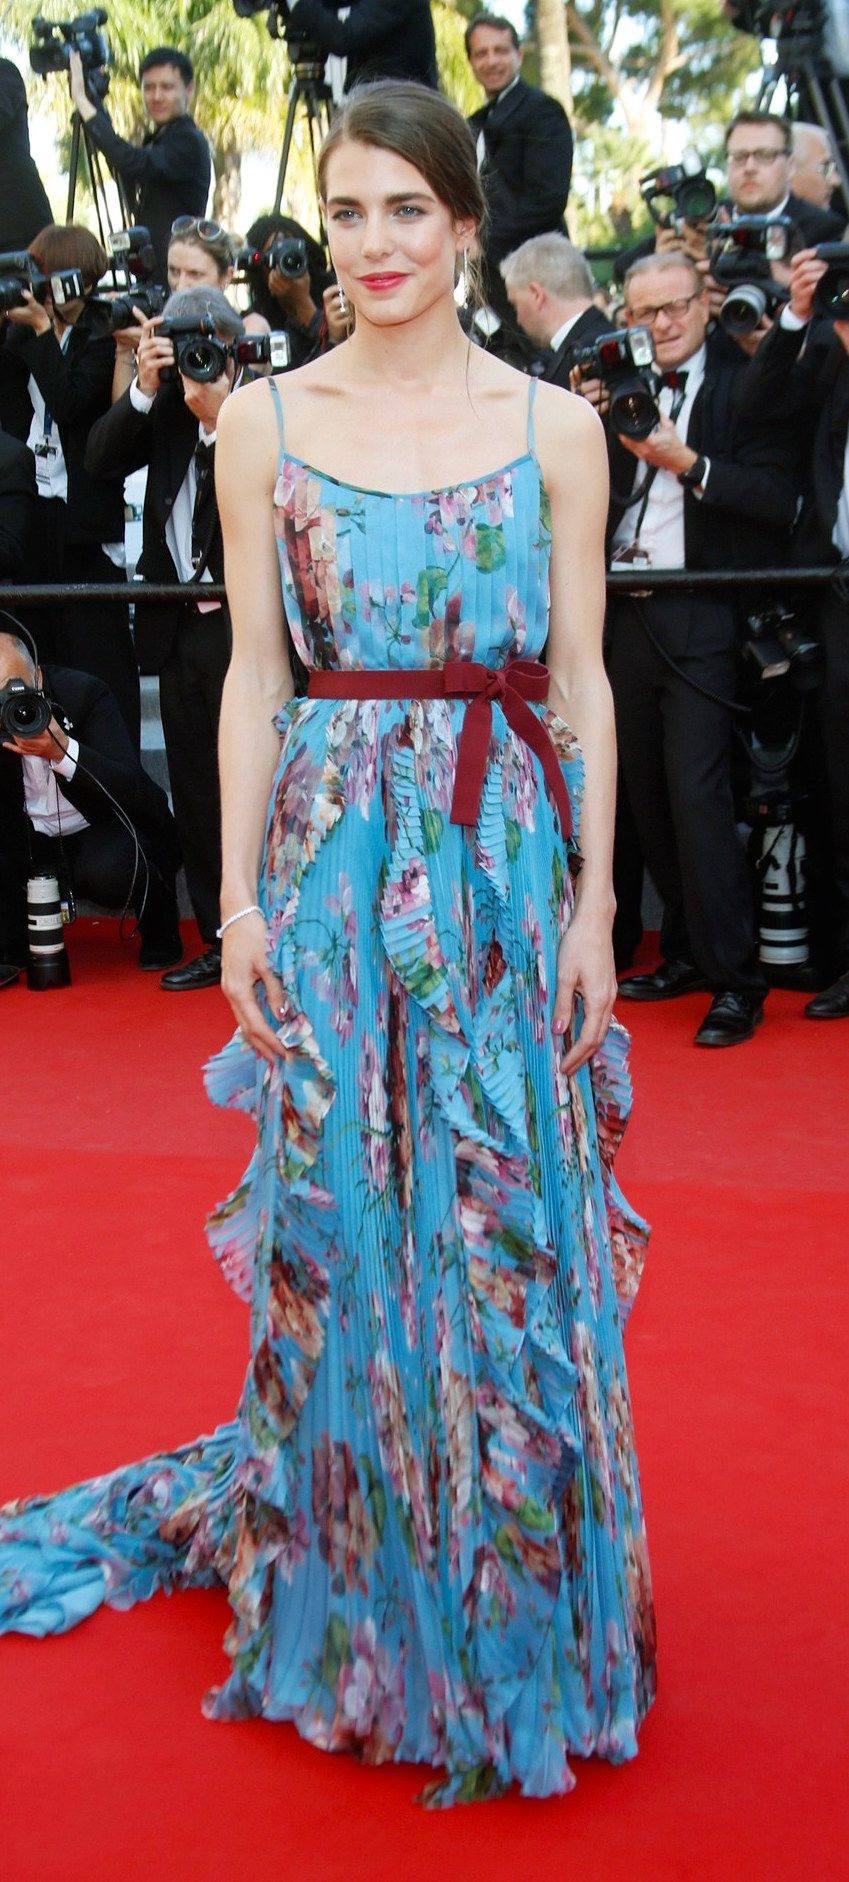 Charlotte Casiraghi wore a Gucci gown to attend the \